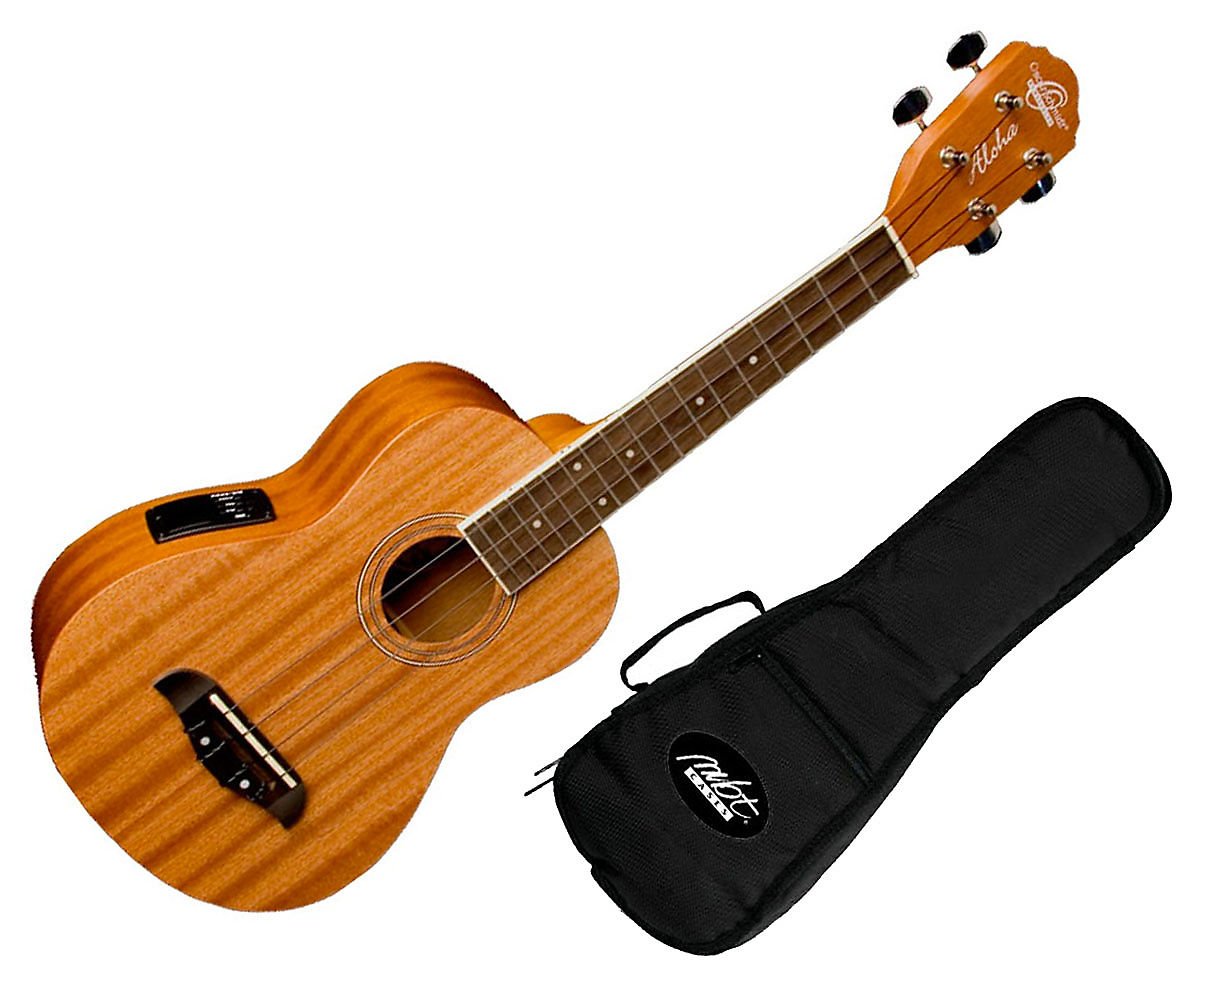 Yamaha F310 also 272261448076 additionally Oscar Schmidt Ou2e M Concert together with Semi Hollow Body Electric Guitar furthermore 1259863 New Oscar Schmidt Oe30ch Delta Blues 335 Style Semi Hollow Body Electric Guitar Cherry Red. on oscar schmidt semi hollow body